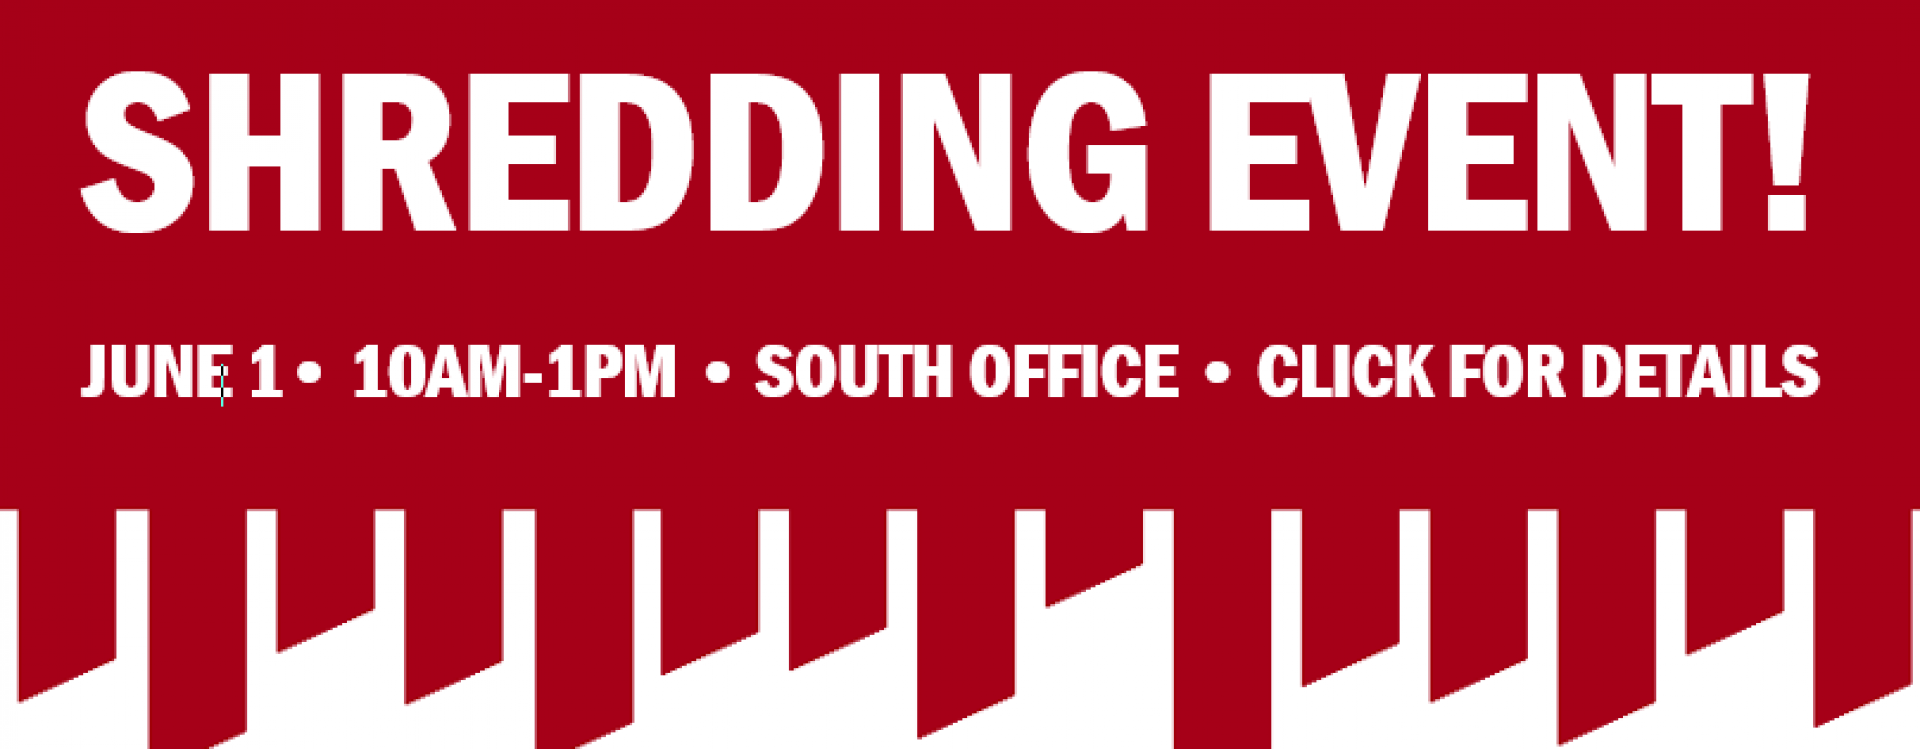 shredding event june 1. 10am-1pm. south office. click for details